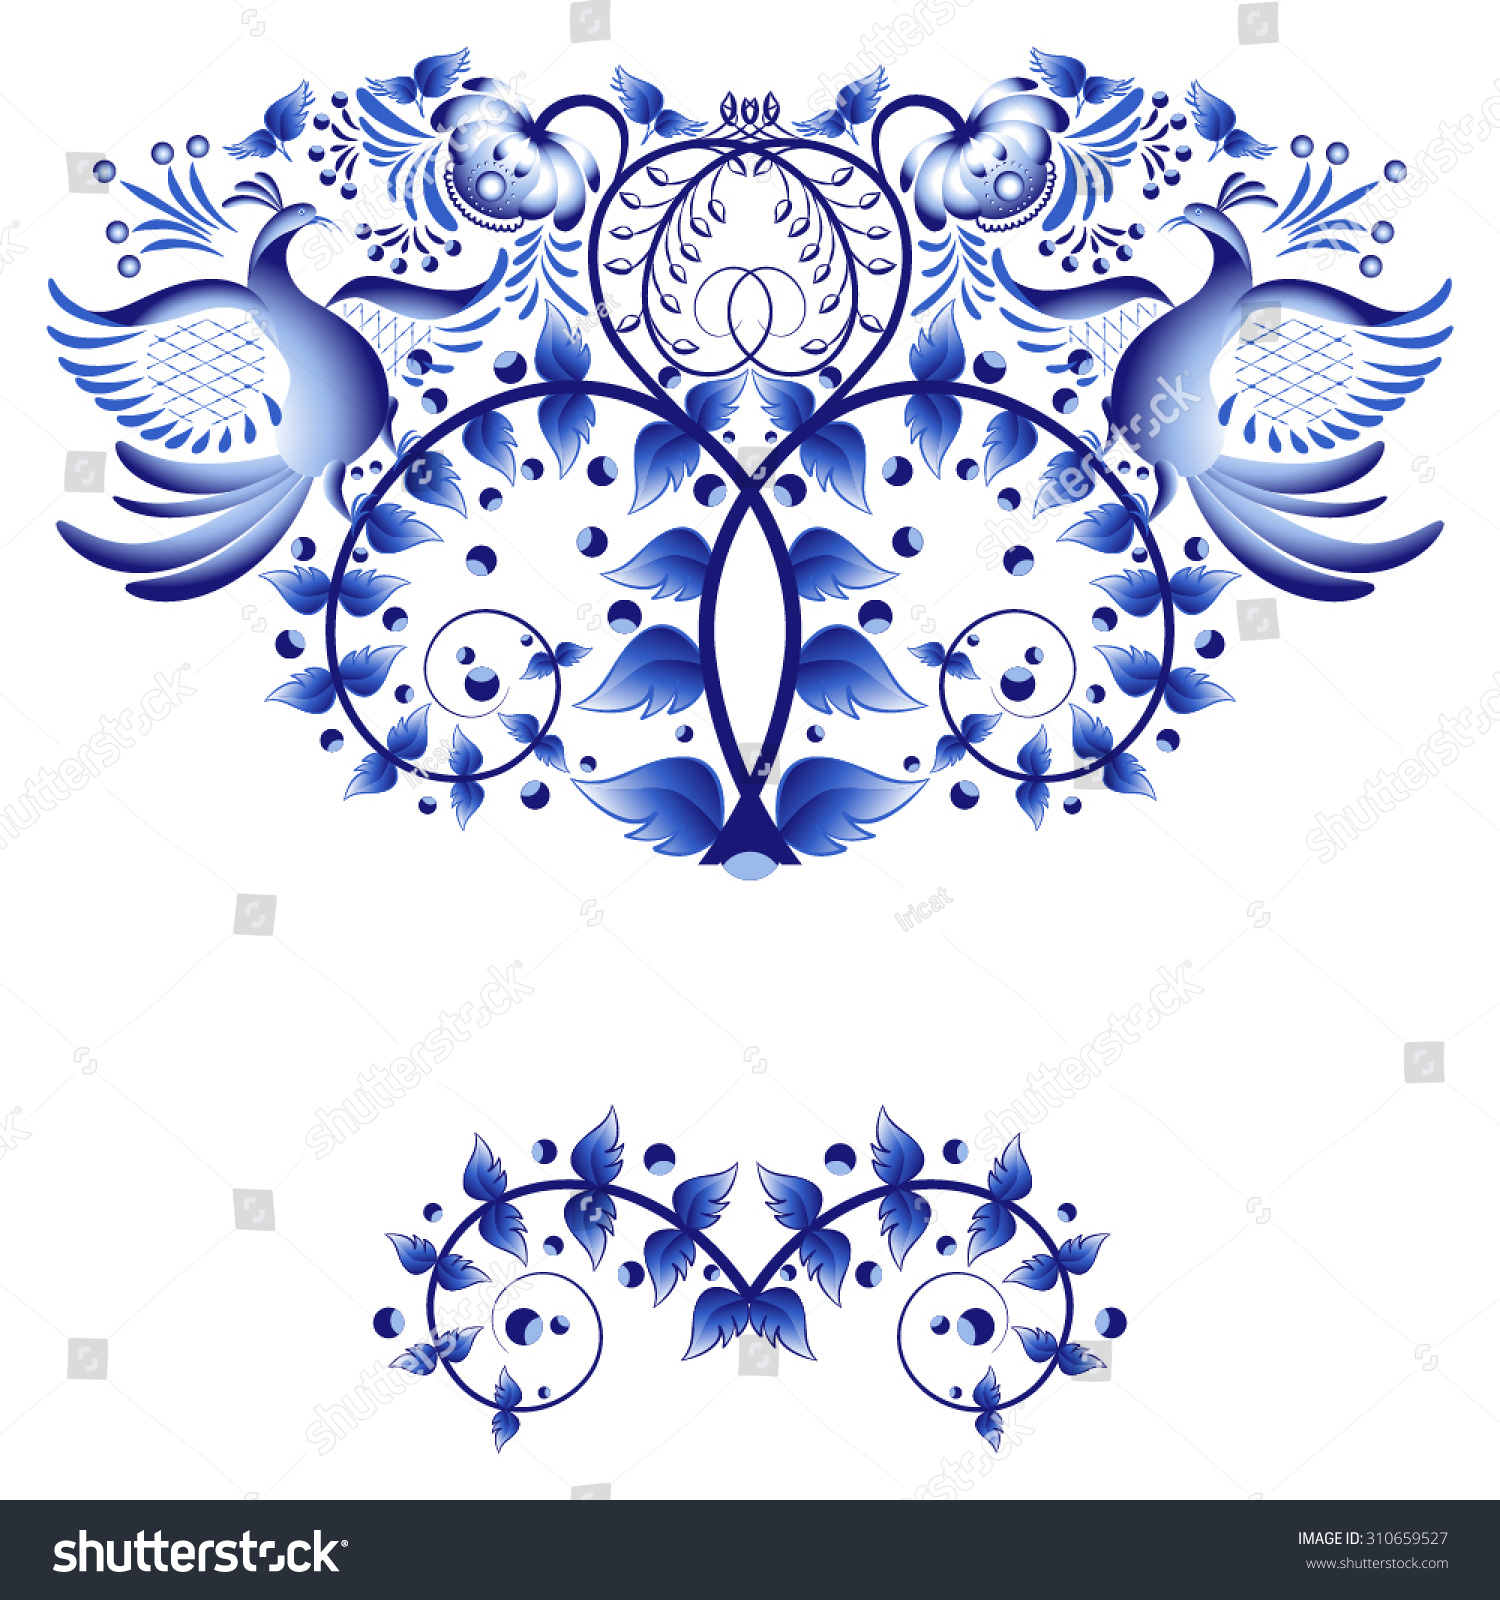 Artistic floral element abstract gzhel folk art blue flowers stock - Gzhel Style Elements For Greeting Card Or Invitation With Blue Painted Flowers And Birds